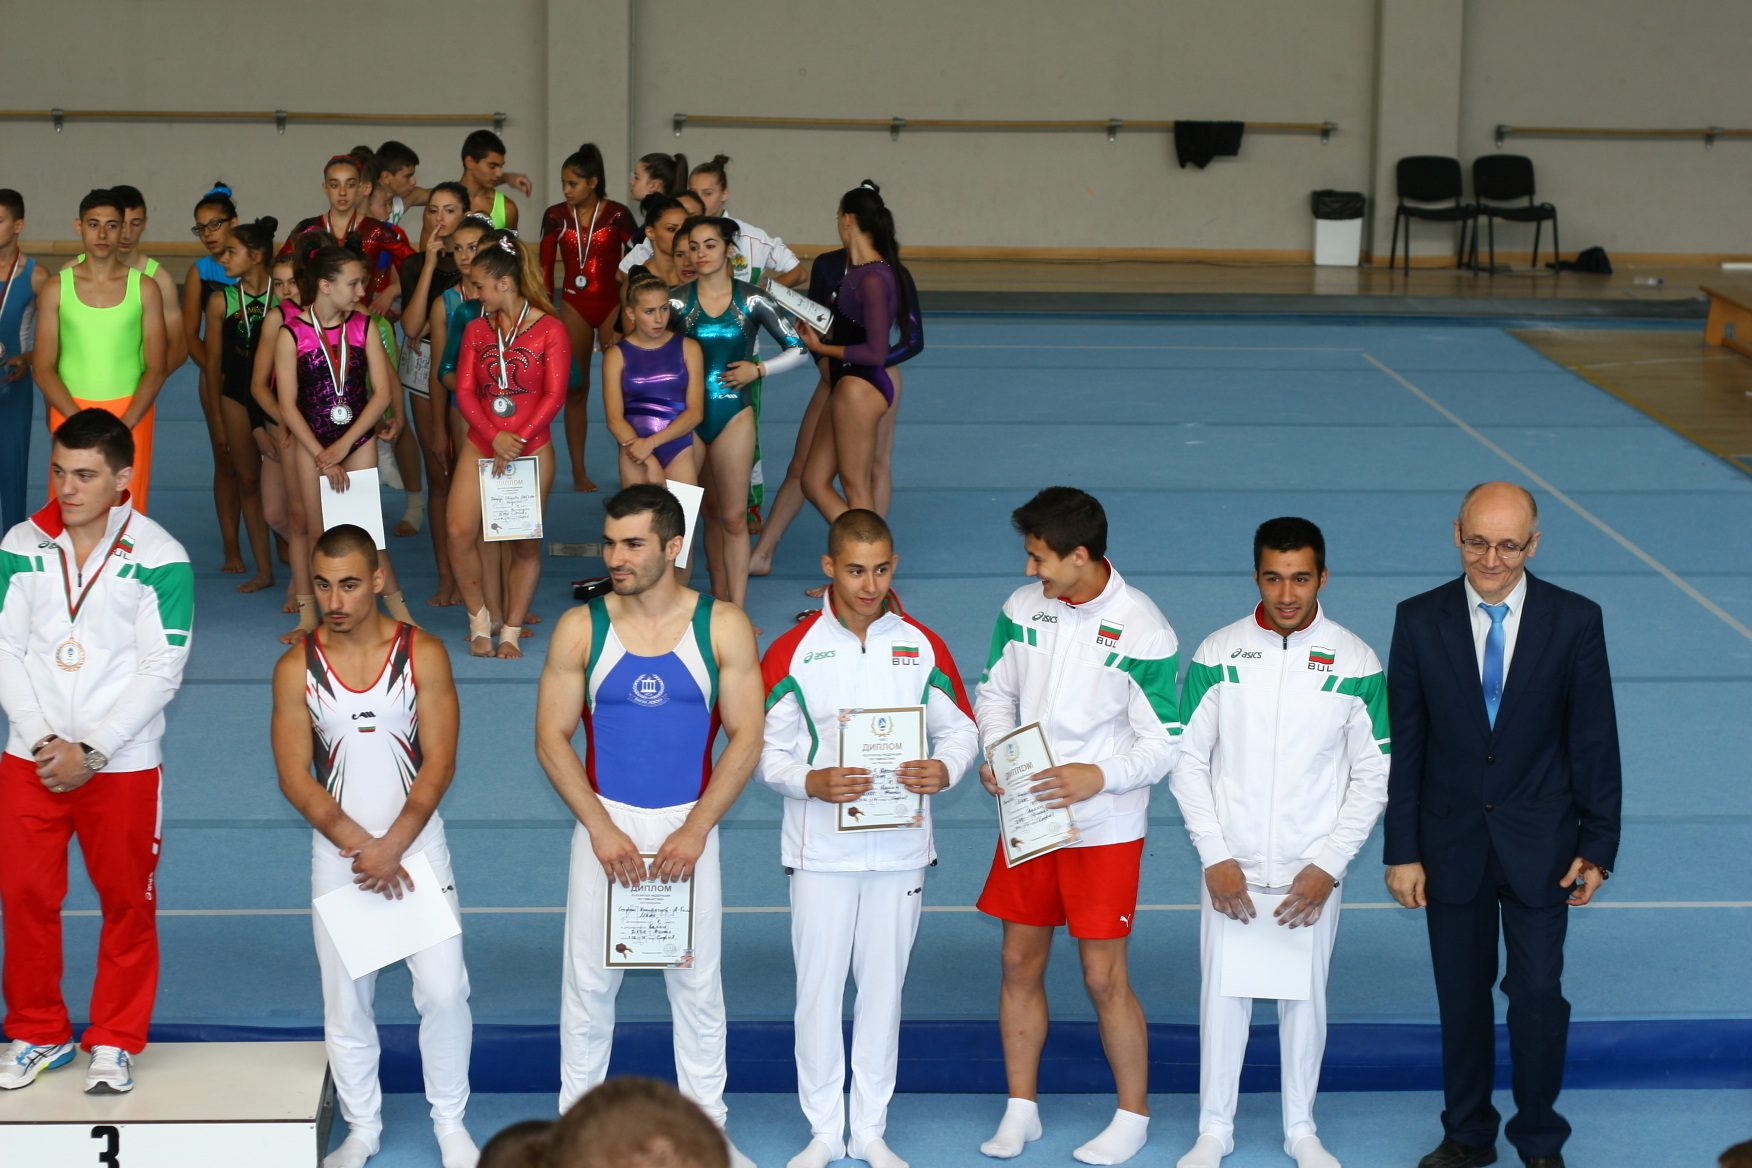 PhD student Stefan Kolimechkov was ranked 5th in the Men's Rings Final